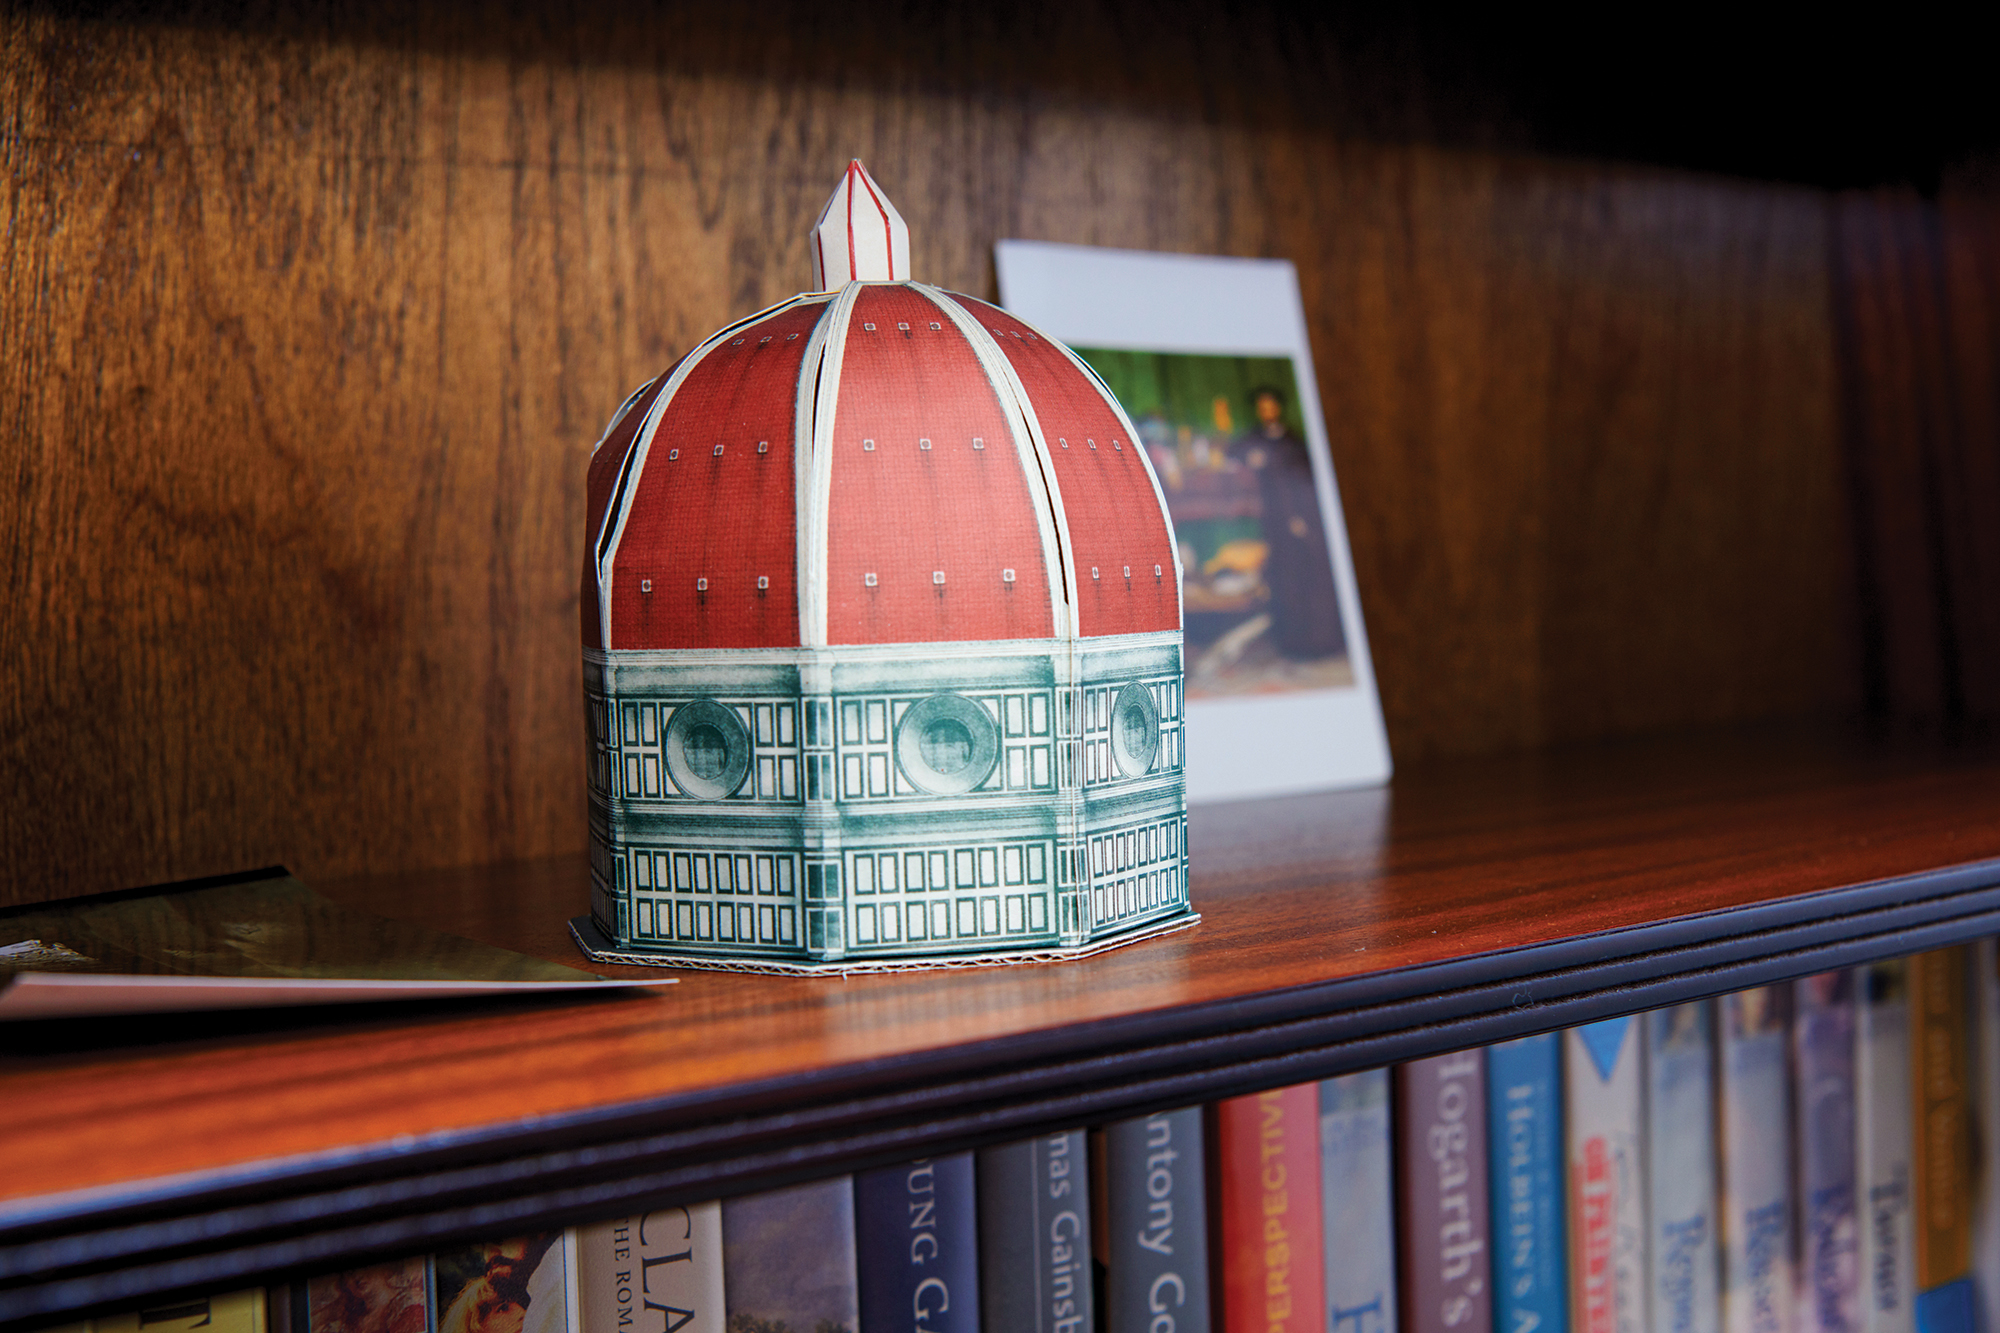 A miniature cardboard mock of the Duomo in Florence, Italy, sits on a bookshelf.